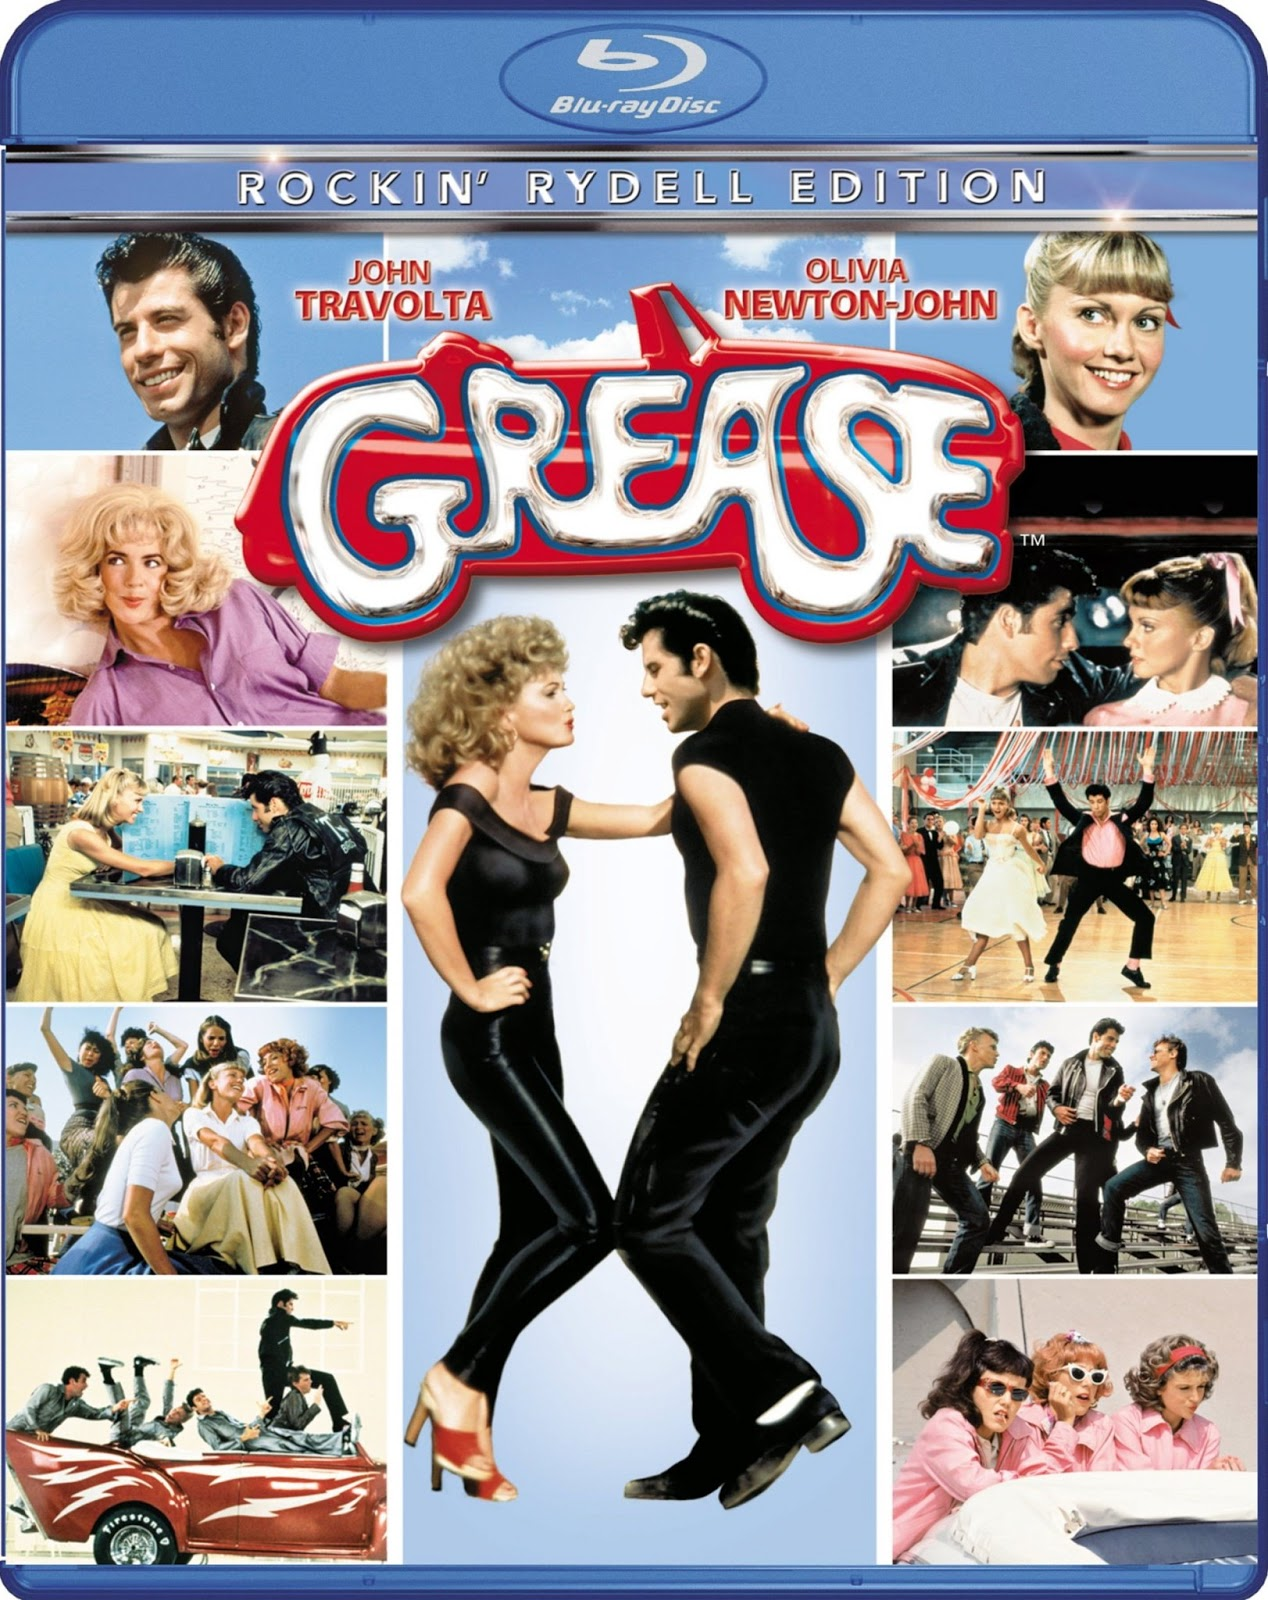 Vaselina [Grease] [1978] [BrRip 1080p Mkv] [Dual Latino-Ingles] [MG]